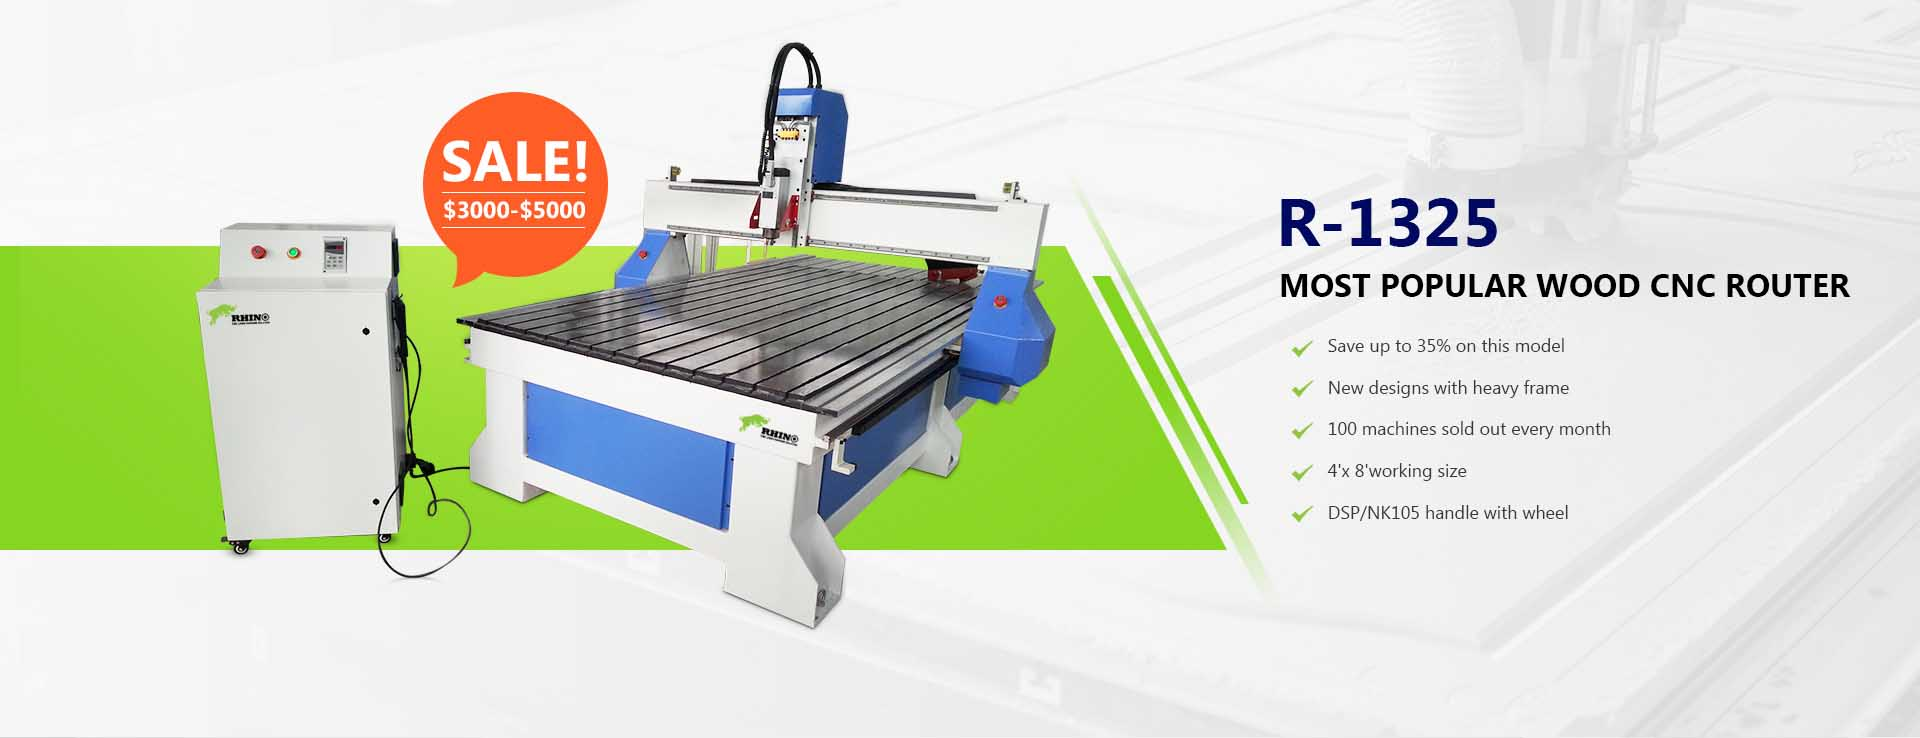 Wood CNC Router 4X8ft R-1325